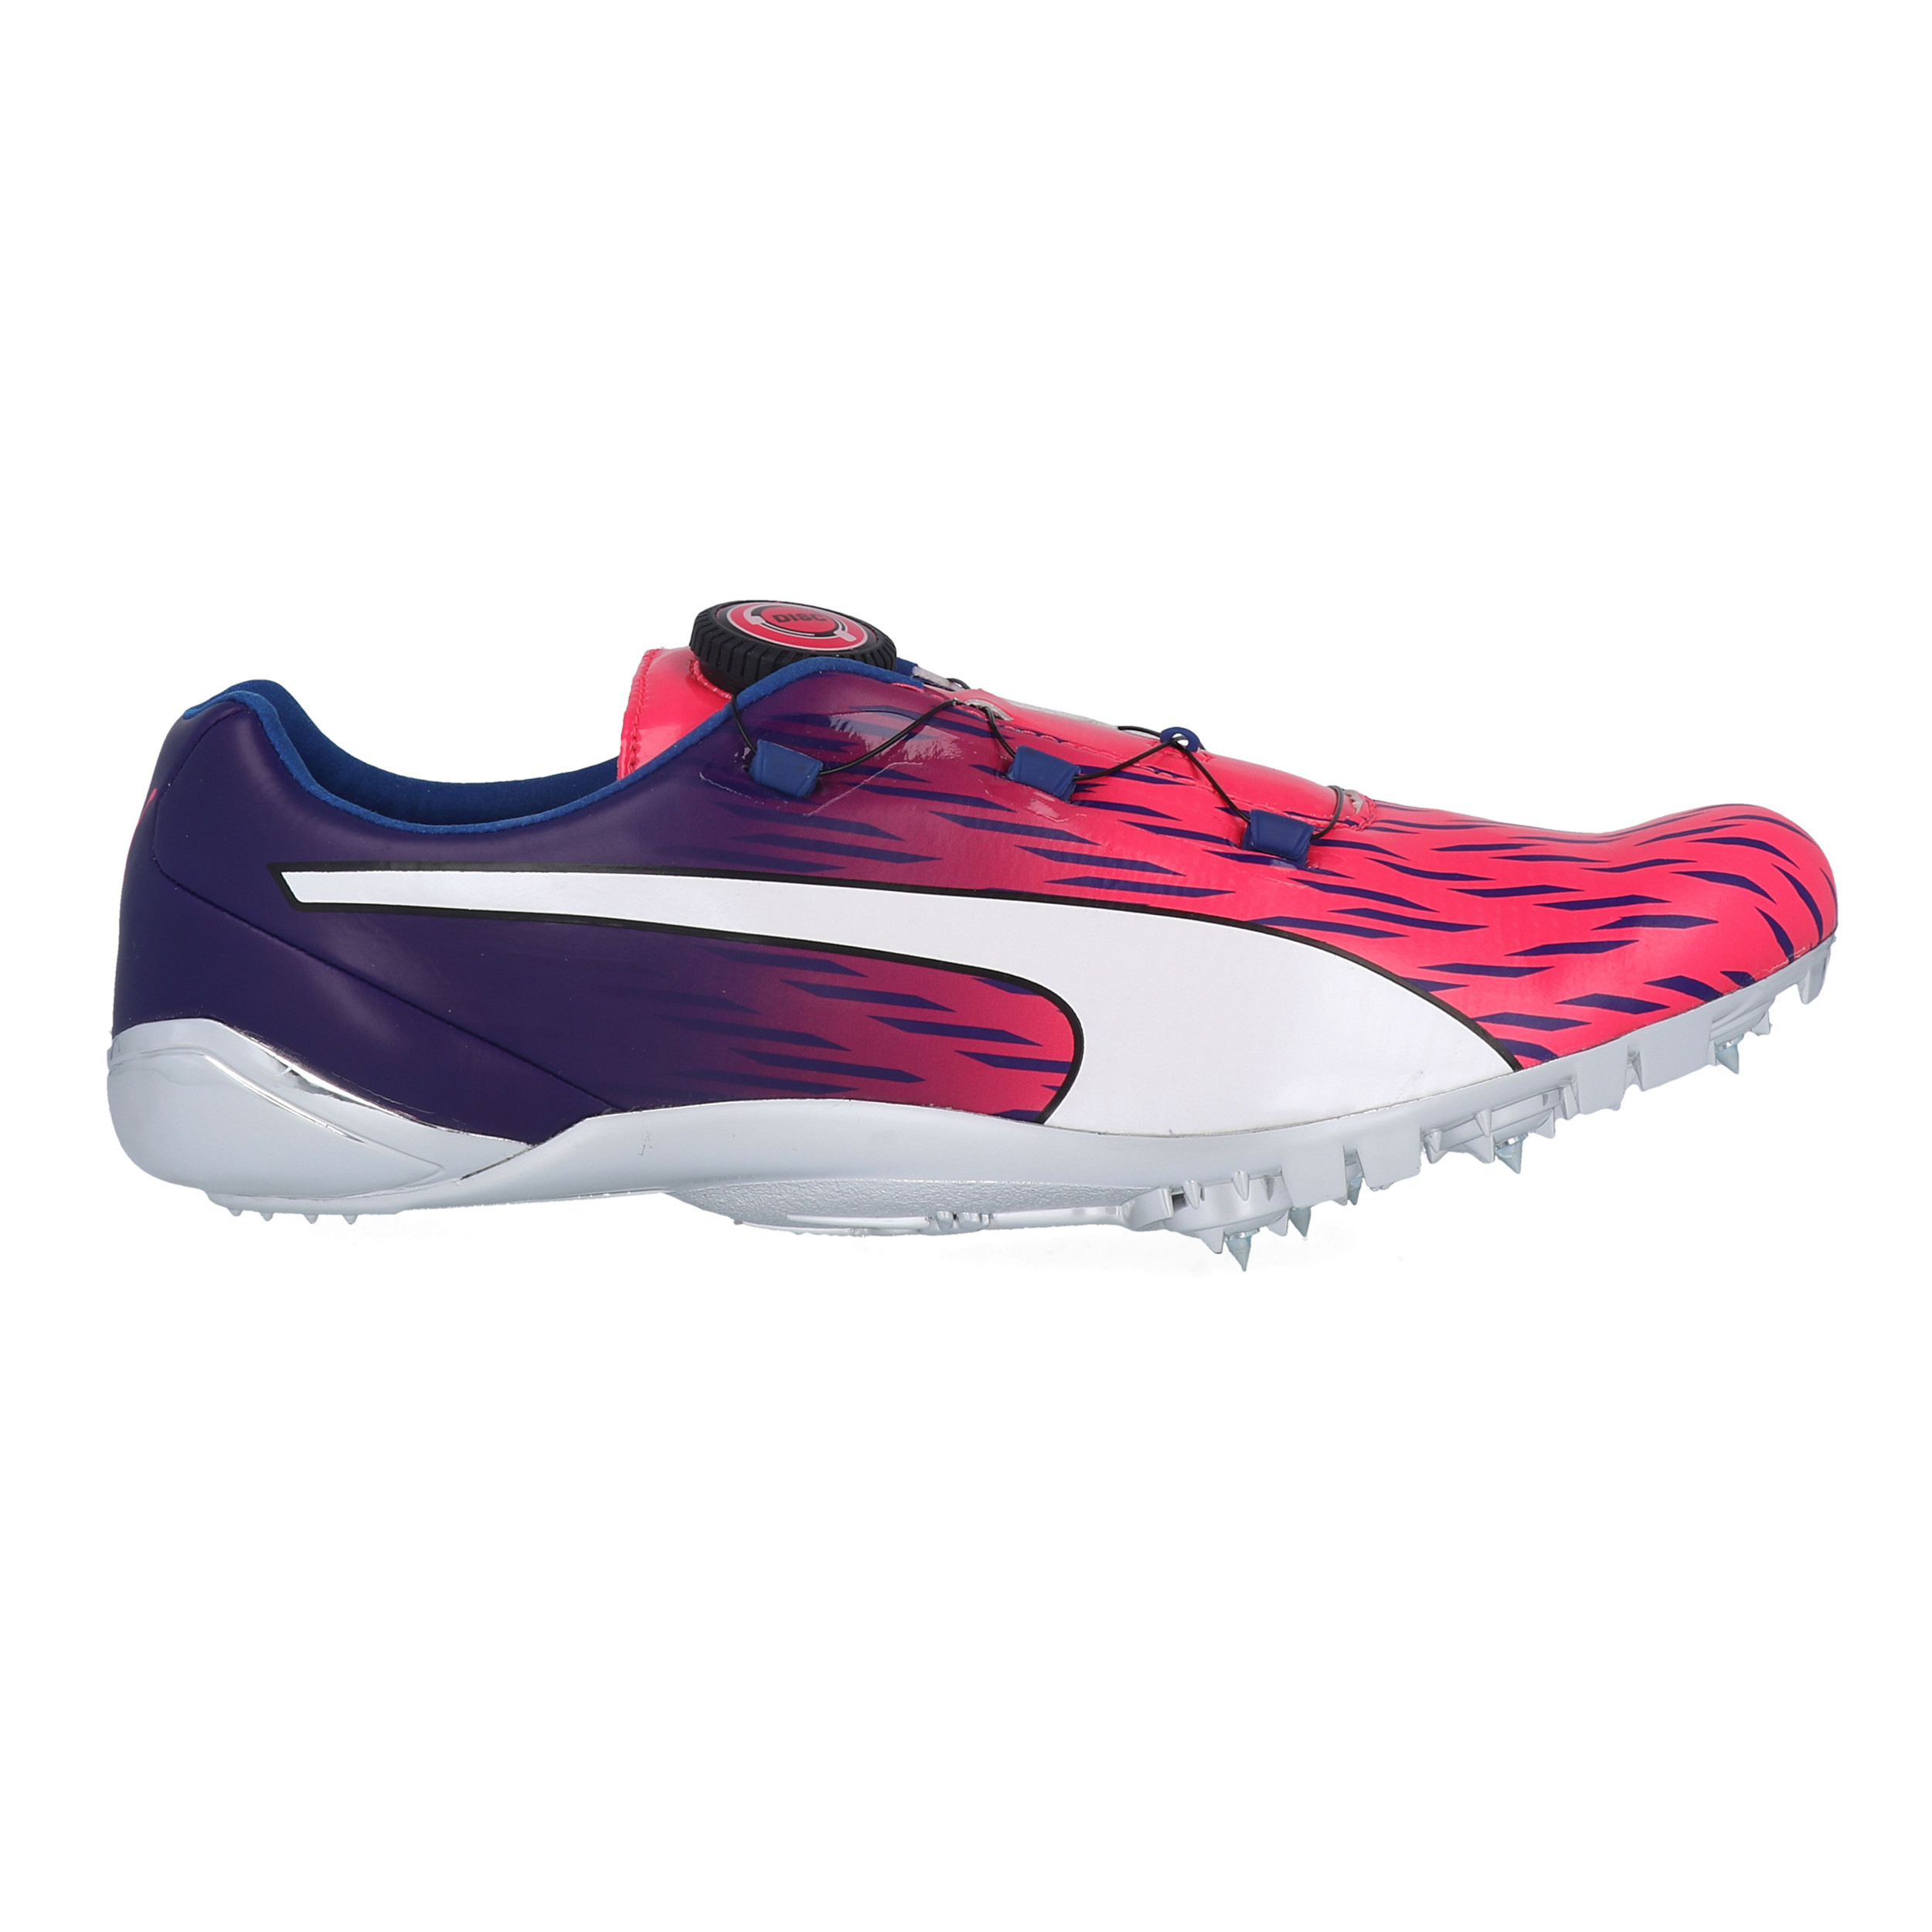 Details about Puma Mens EvoSPEED Disc 3 Running Spikes Traction Purple Red  Sports Breathable